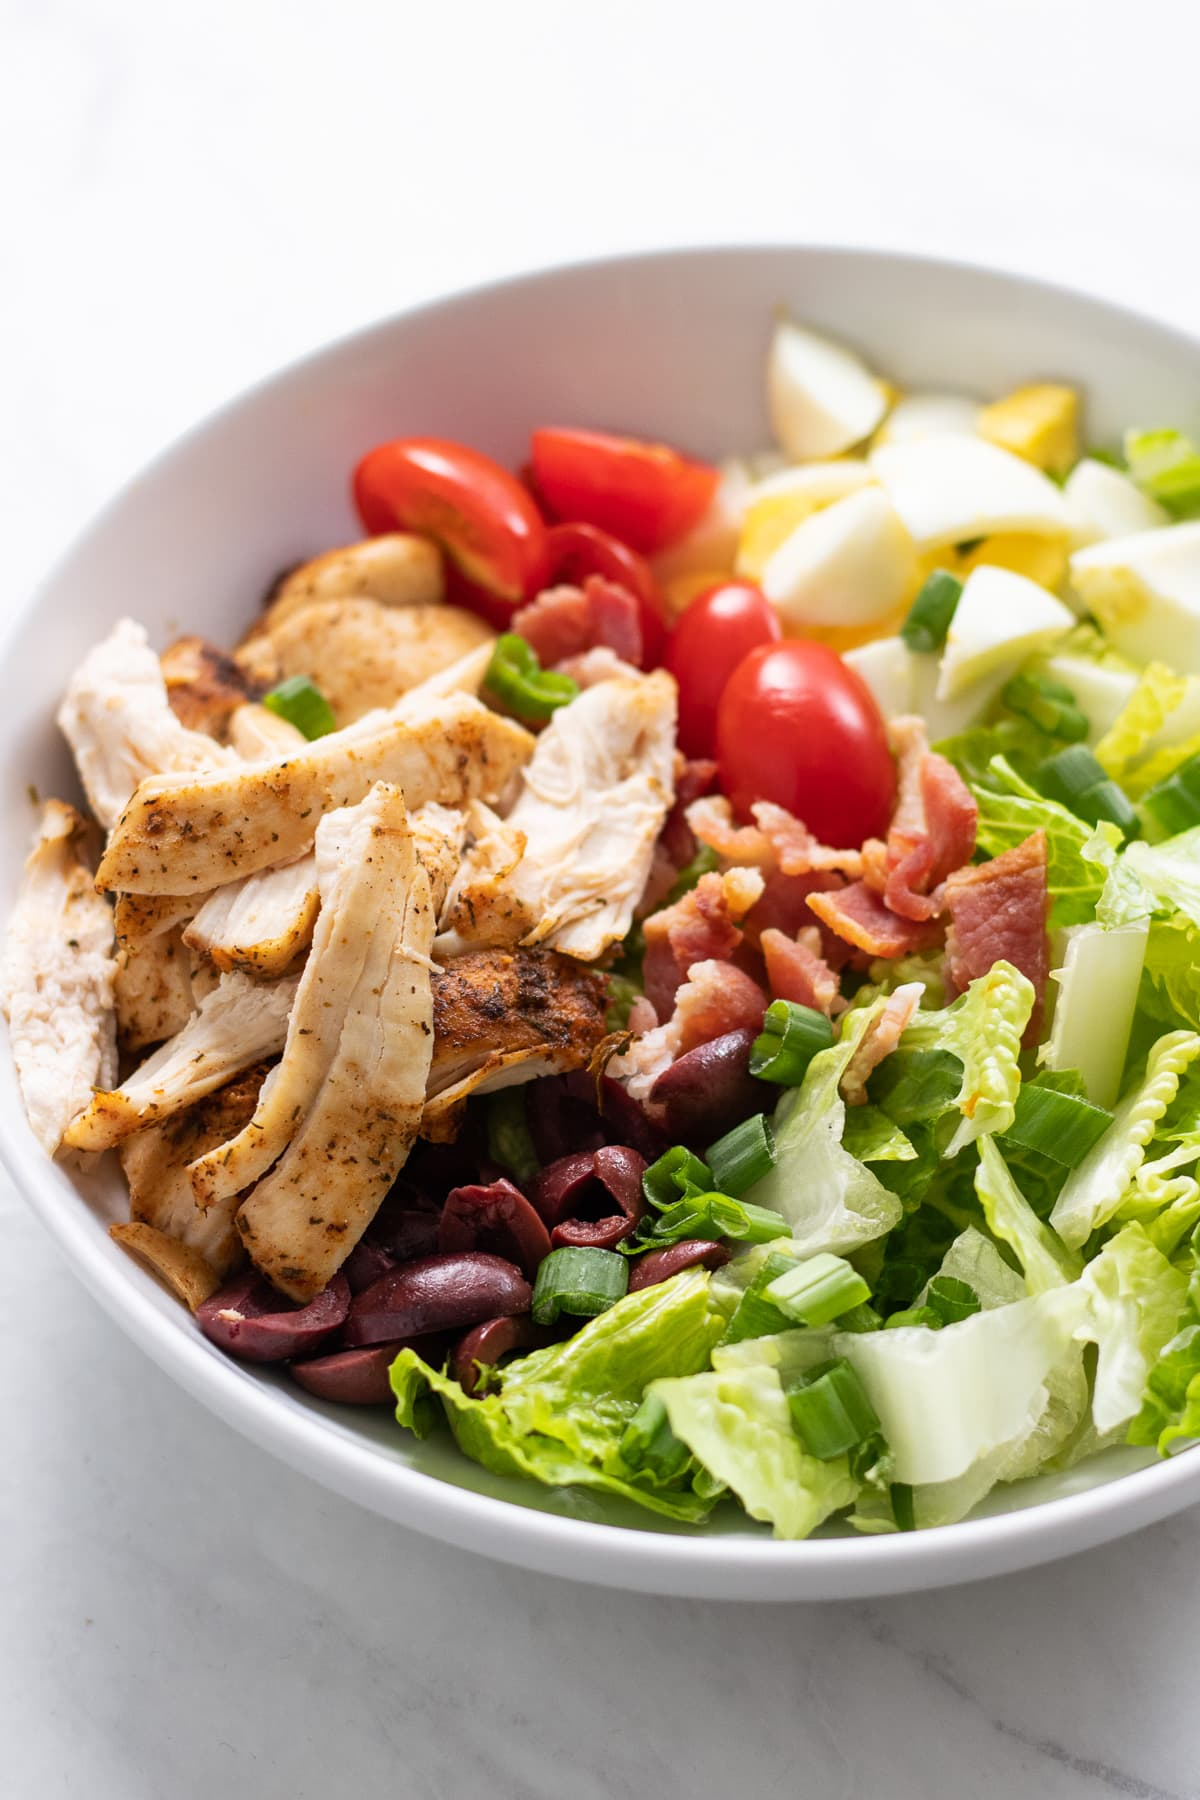 A close up of Low FODMAP Cobb Salad made with crispy romaine, broiled seasoned chicken, bacon crumbles, diced hard-boiled eggs, cherry tomatoes, and olives.